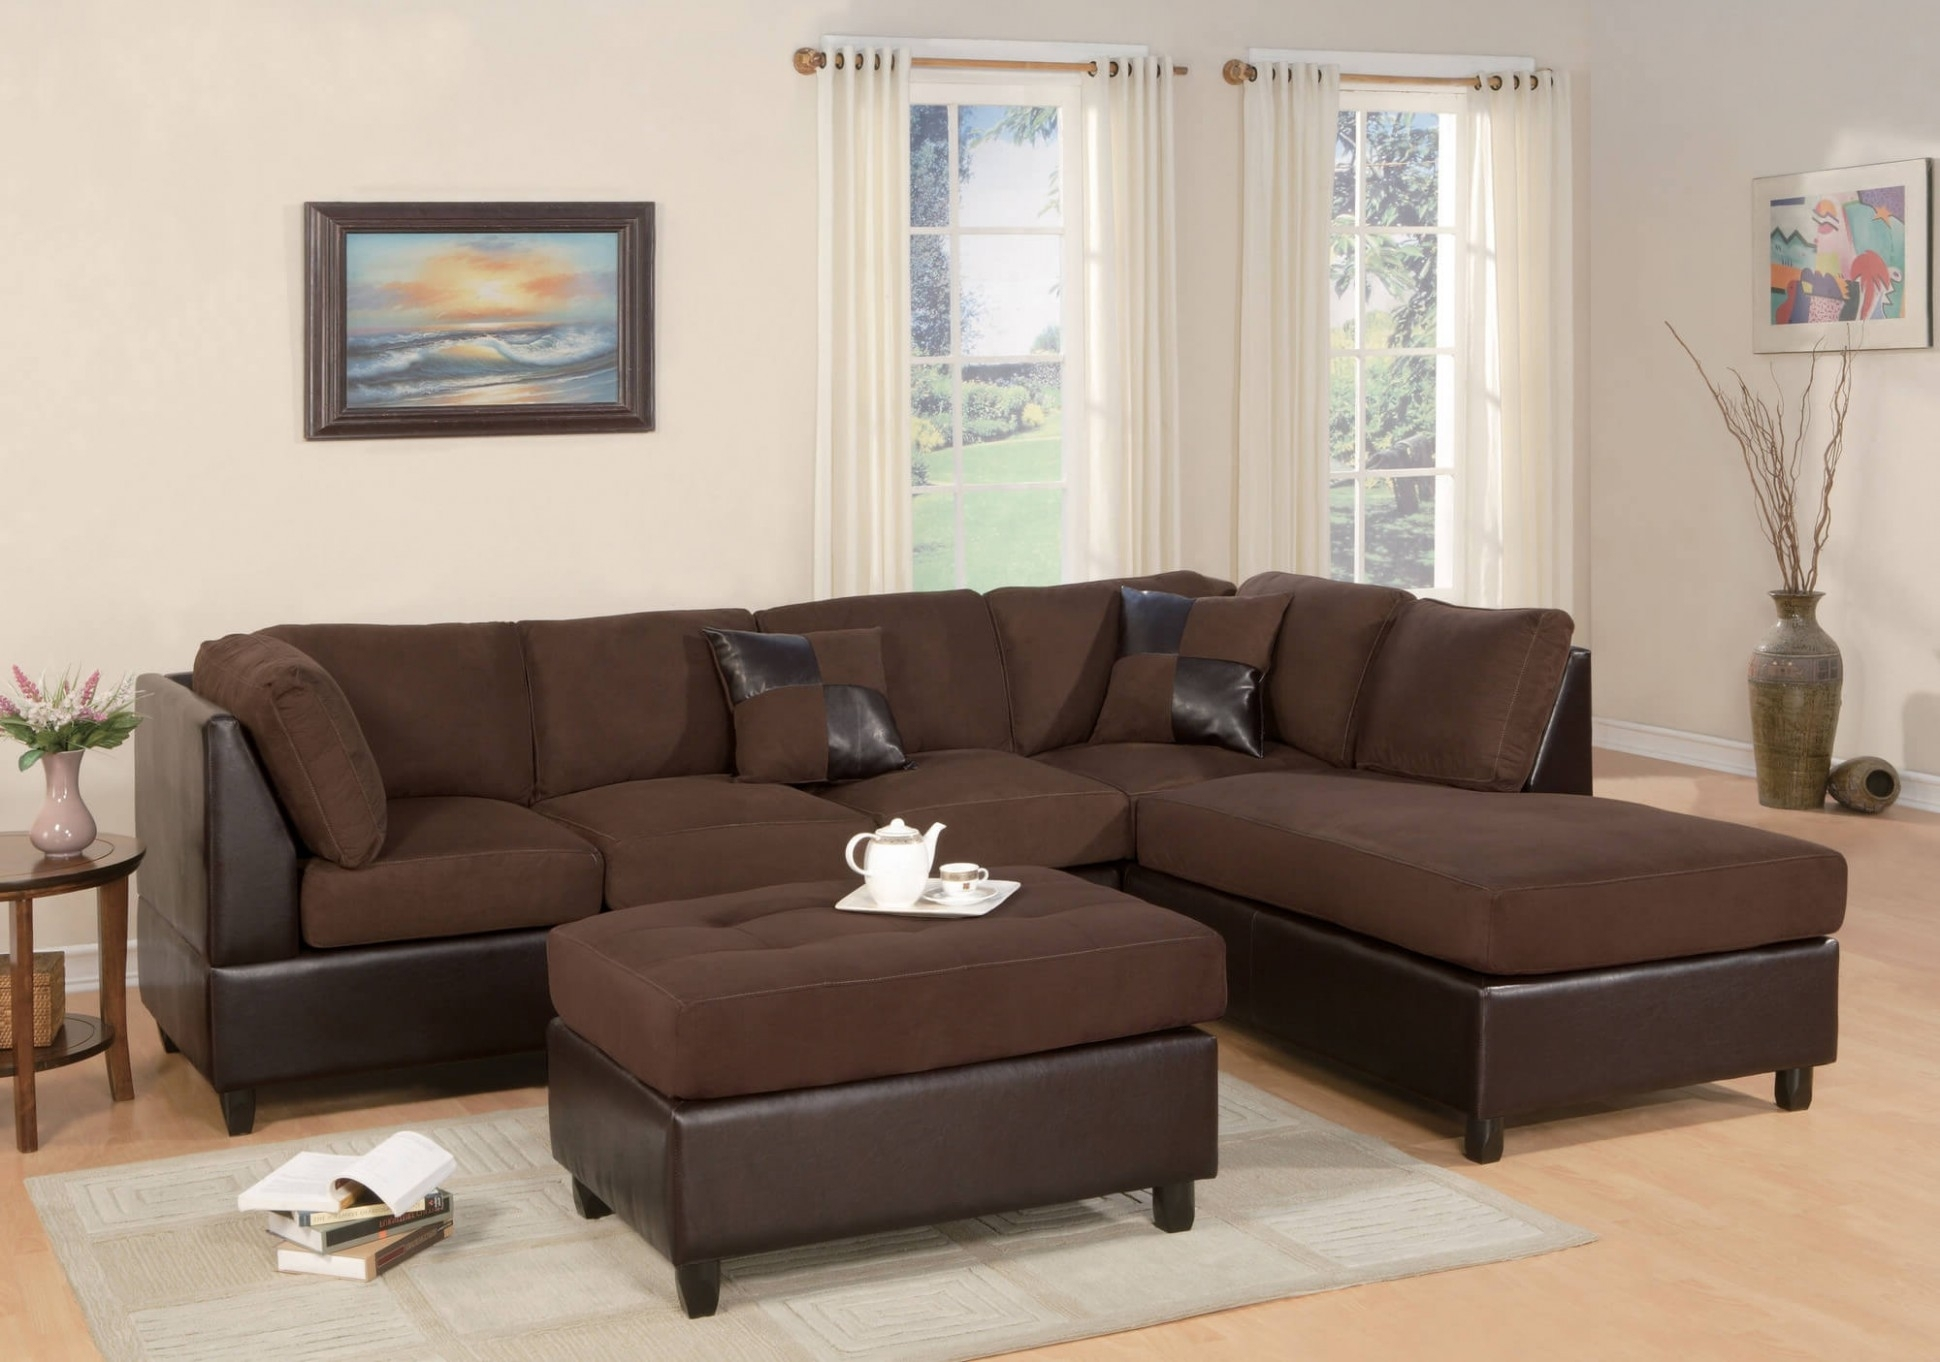 Sectional Sofa : Modern Sofa Bed Discount Sectional Sofas Pb Comfort Inside Sectional Sofas At Chicago (View 10 of 15)